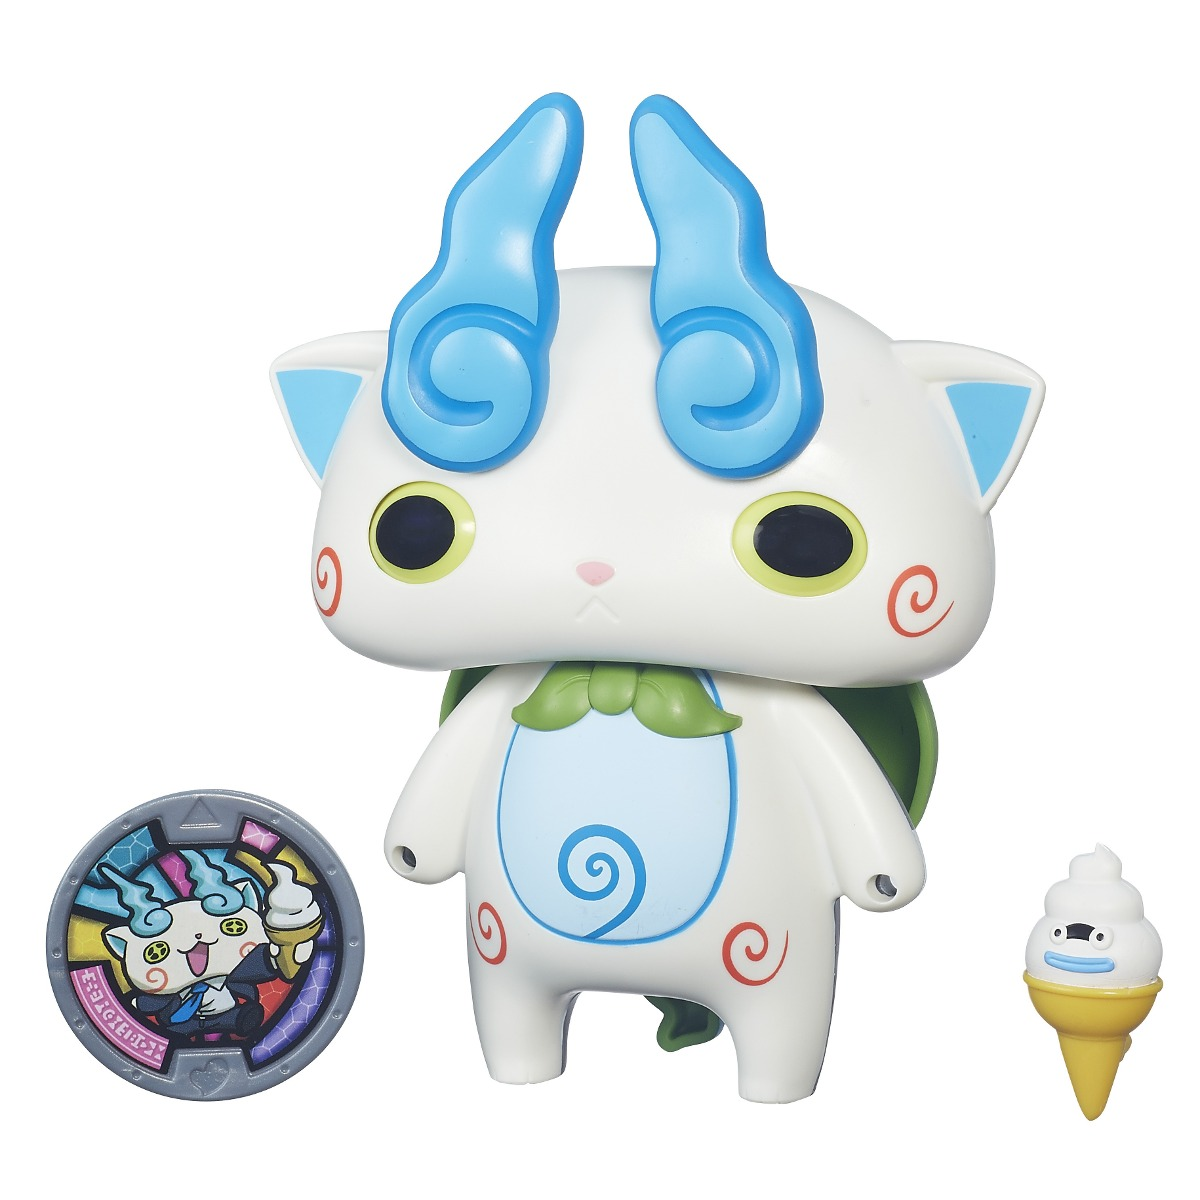 Boneco Yo-kai Watch Komasan Transformavel + Medalha - Hasbro